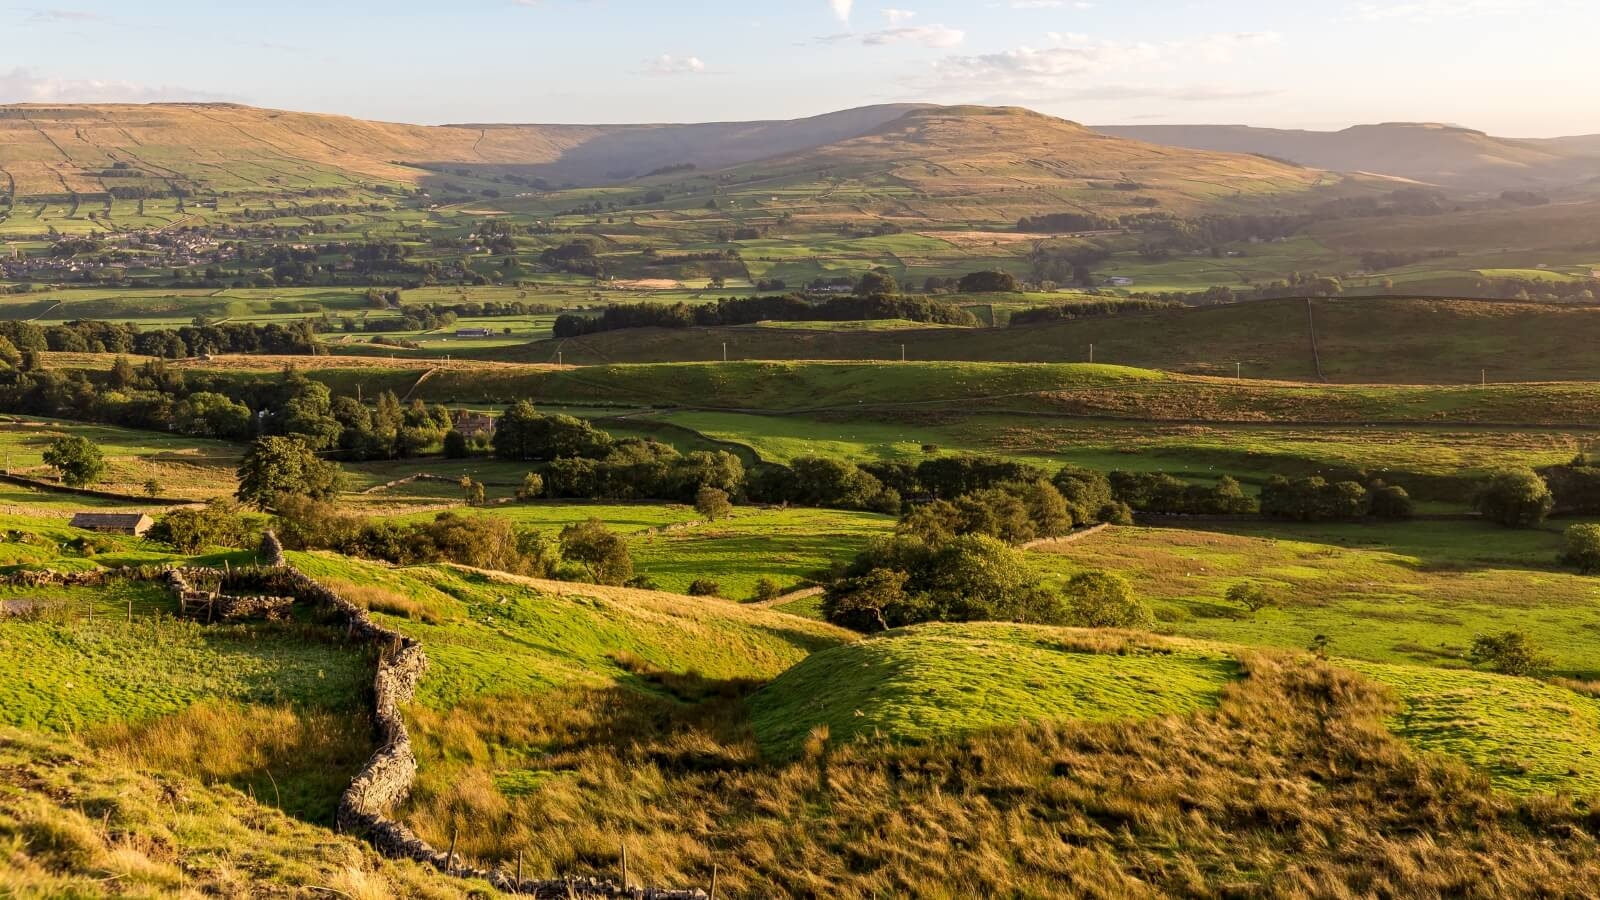 Panoramic View of the Yorkshire Dales